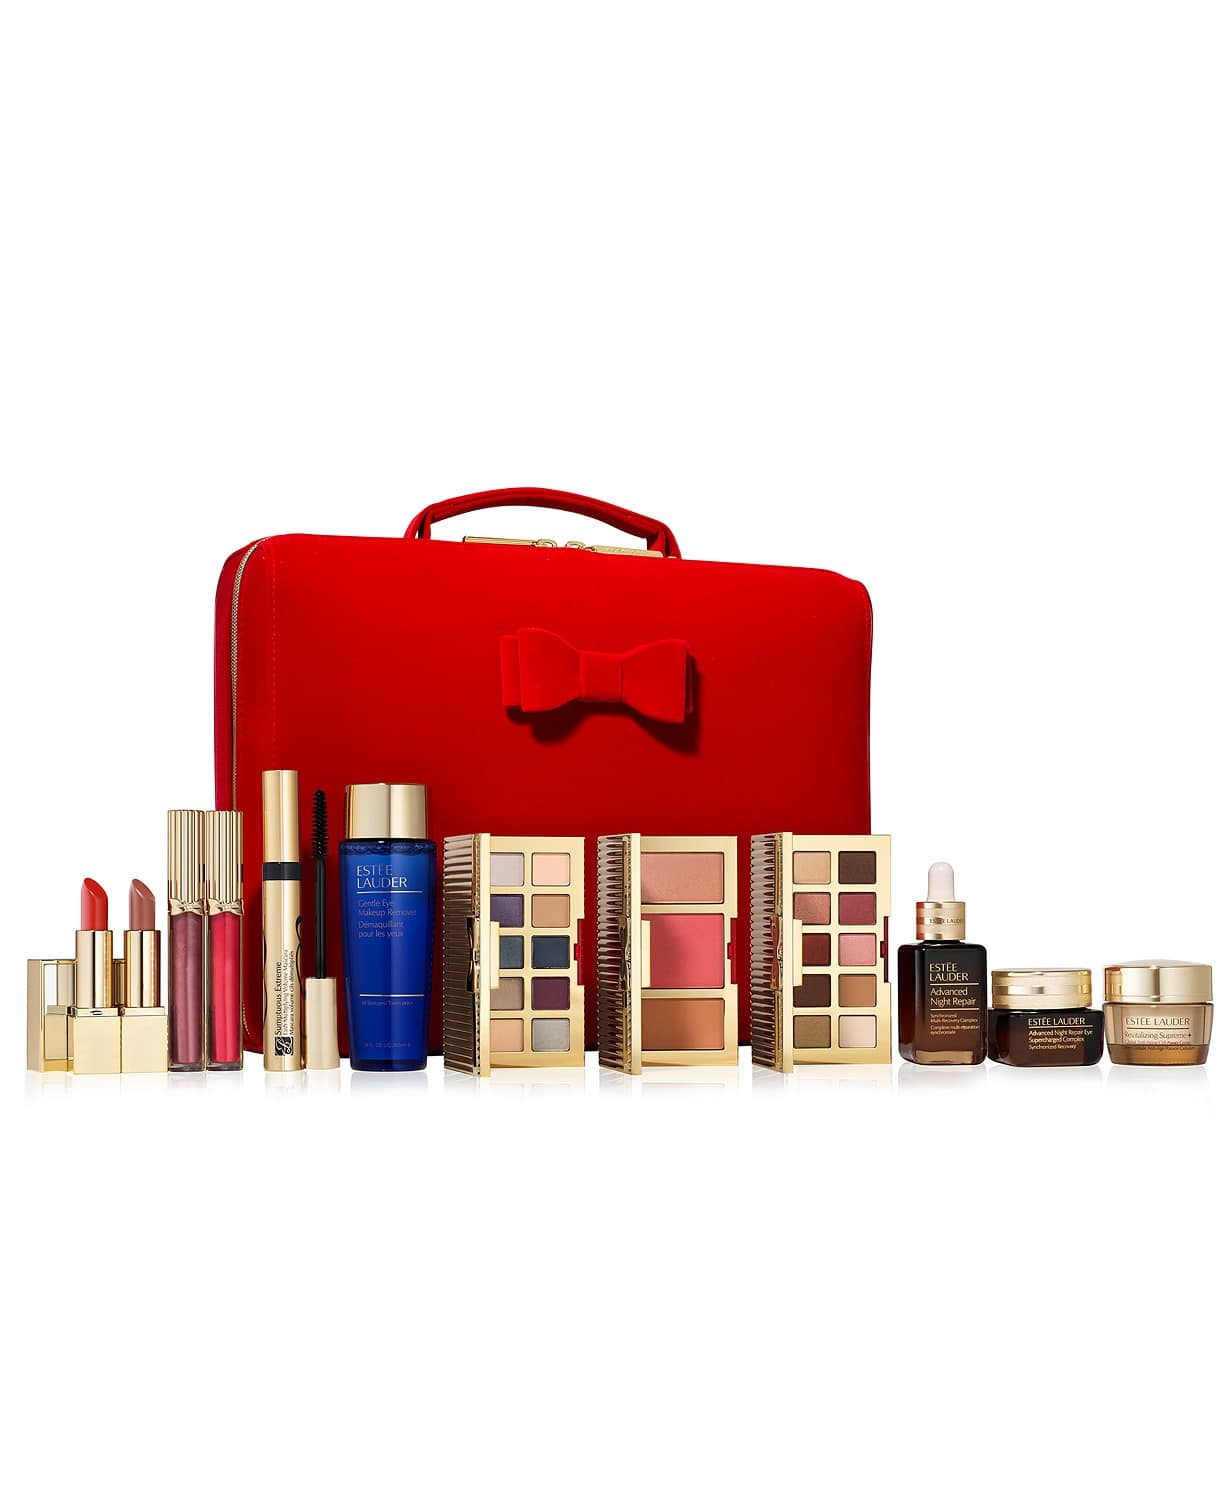 Estée Lauder 33 Beauty Essentials (includes 12 Full Size Favorites) + 2-Pc. Extreme Lashes Eye Makeup Gift Set $70 + free shipping